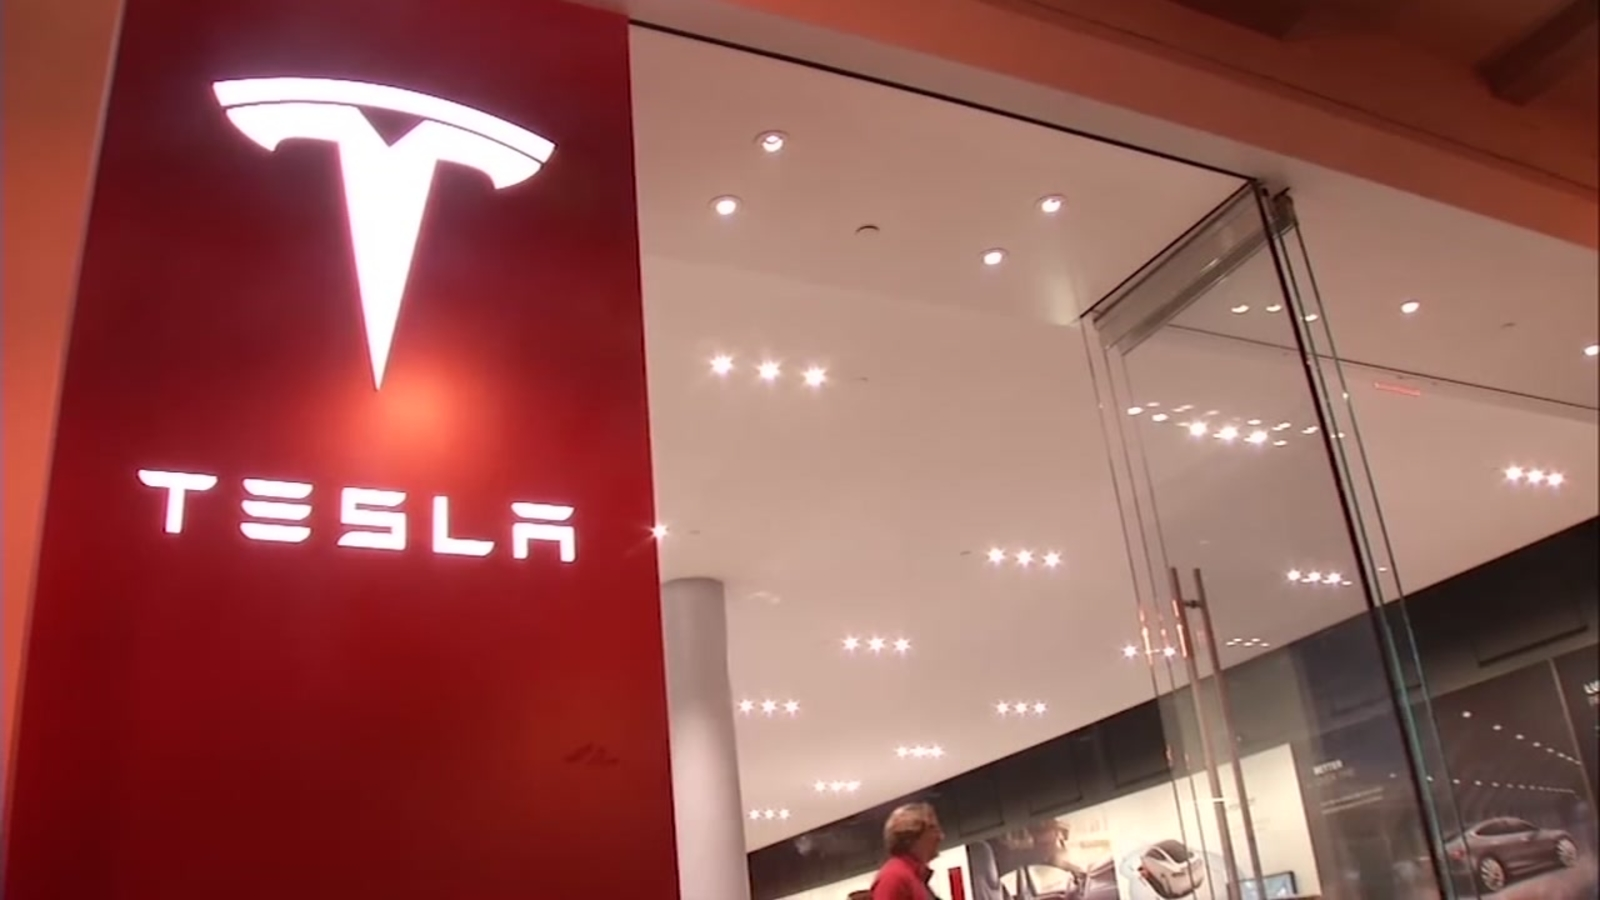 Free Tesla: SF tech firm gets creative amidst engineering shortage with recruitment drive